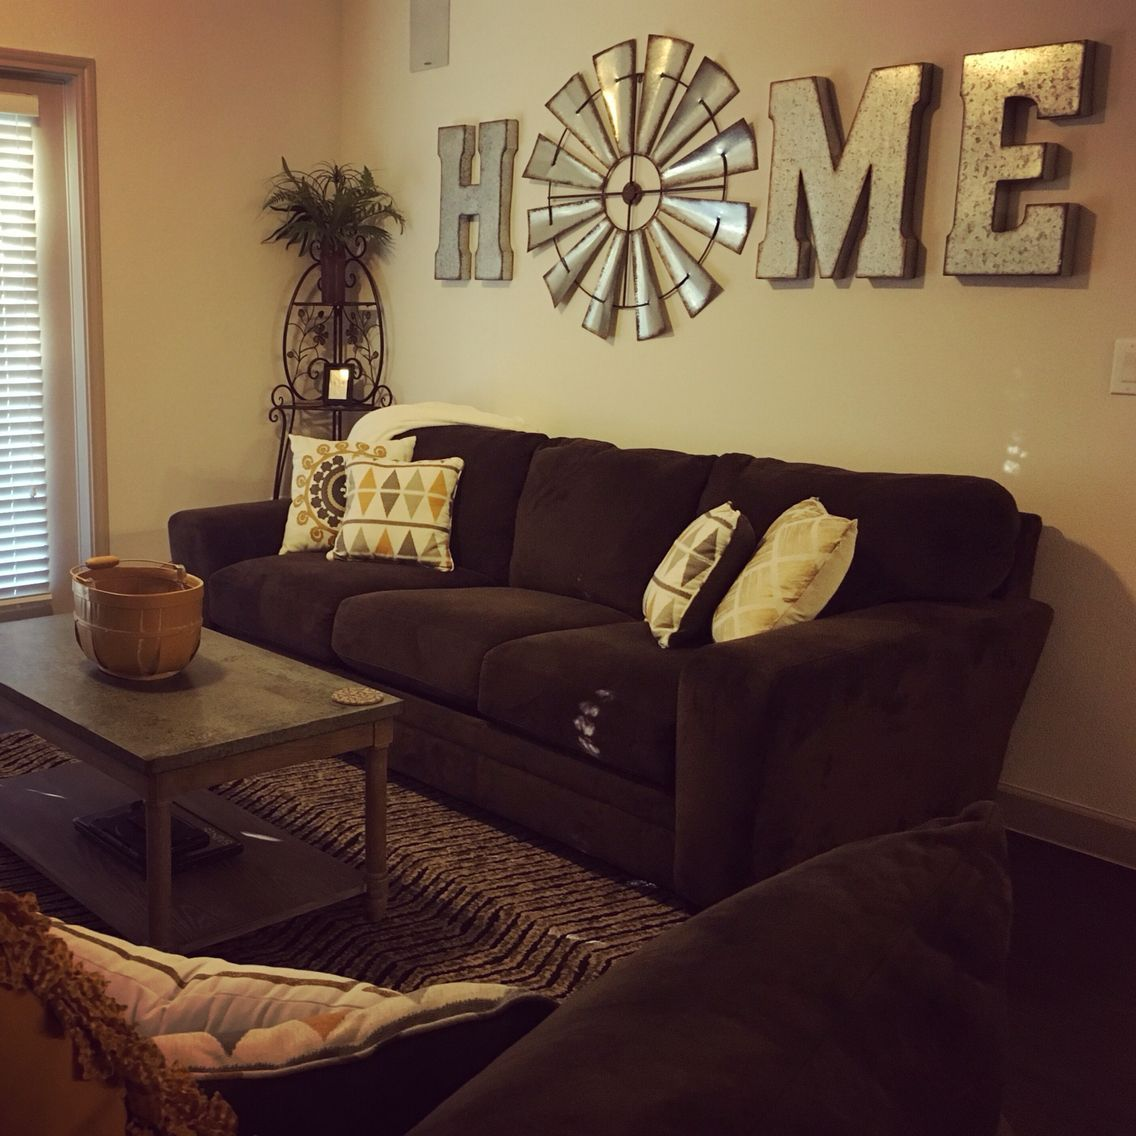 Staggering Country Western Home Decor Creativity Home Decorating Ideas In 2020 Home Living Room Western Living Rooms Living Room Decor Country #no #couch #living #room #ideas